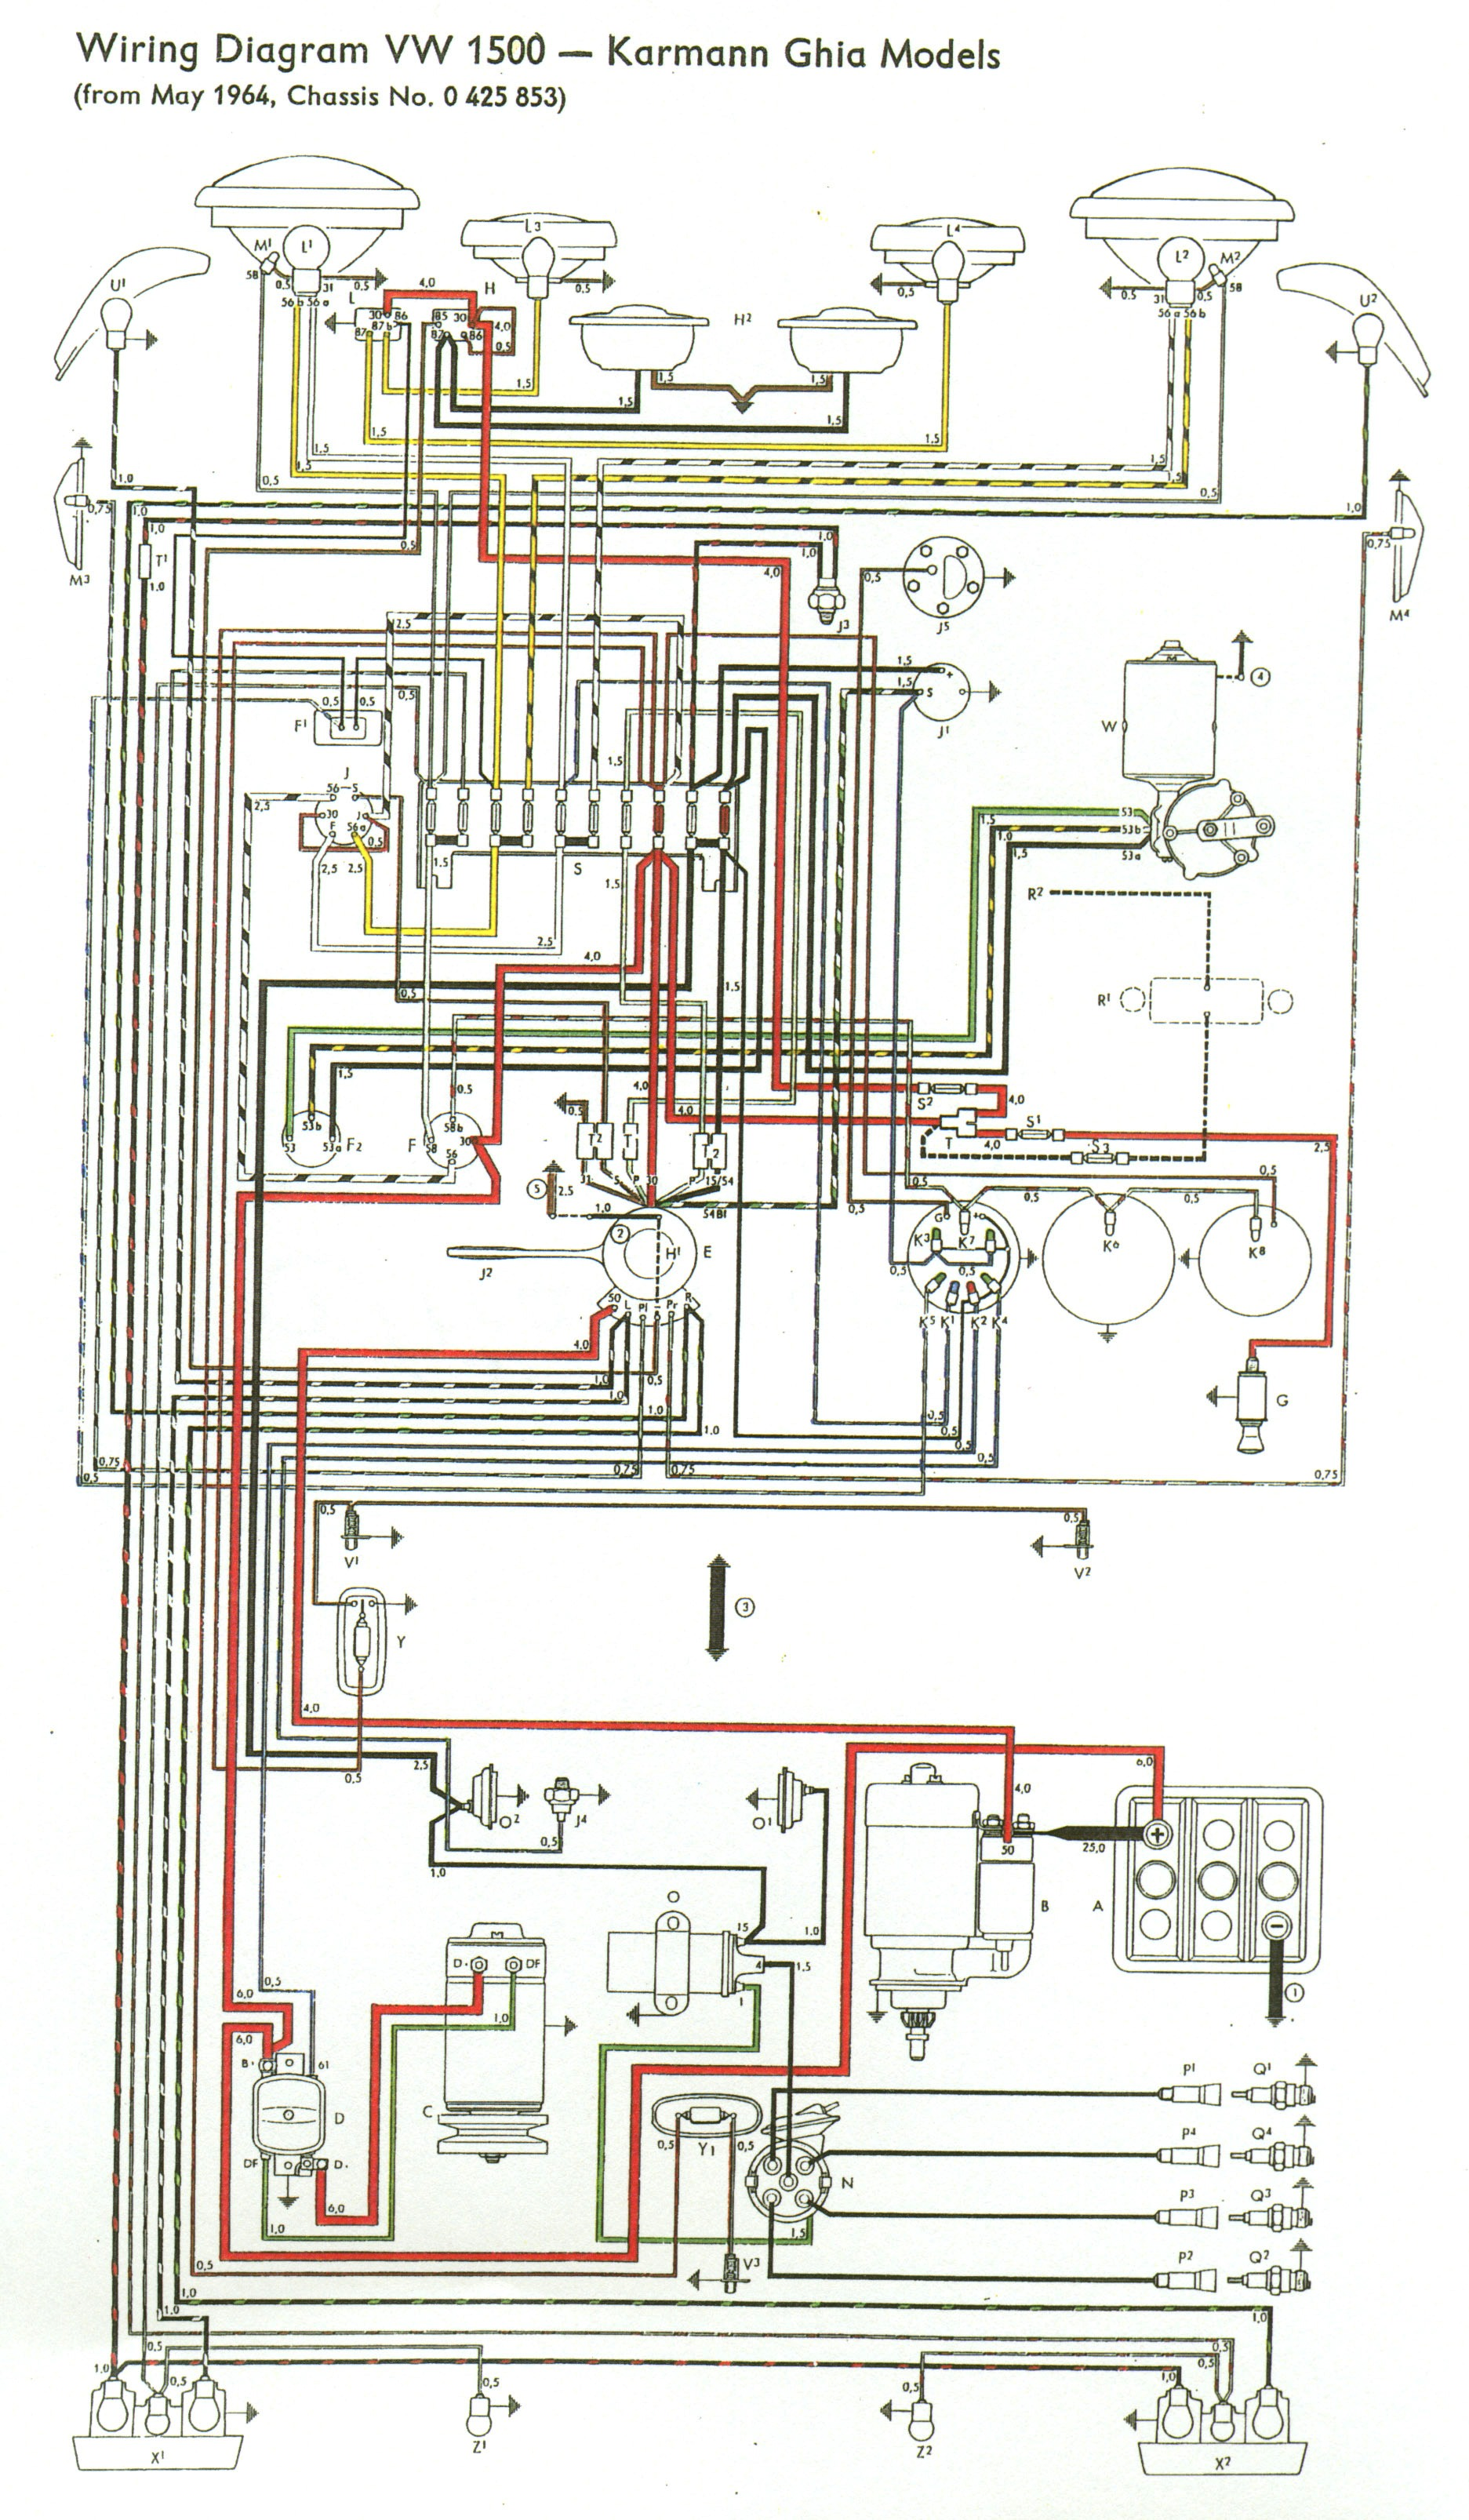 1965to66front t34 world wiring diagrams 1965 vw beetle wiring diagram at nearapp.co